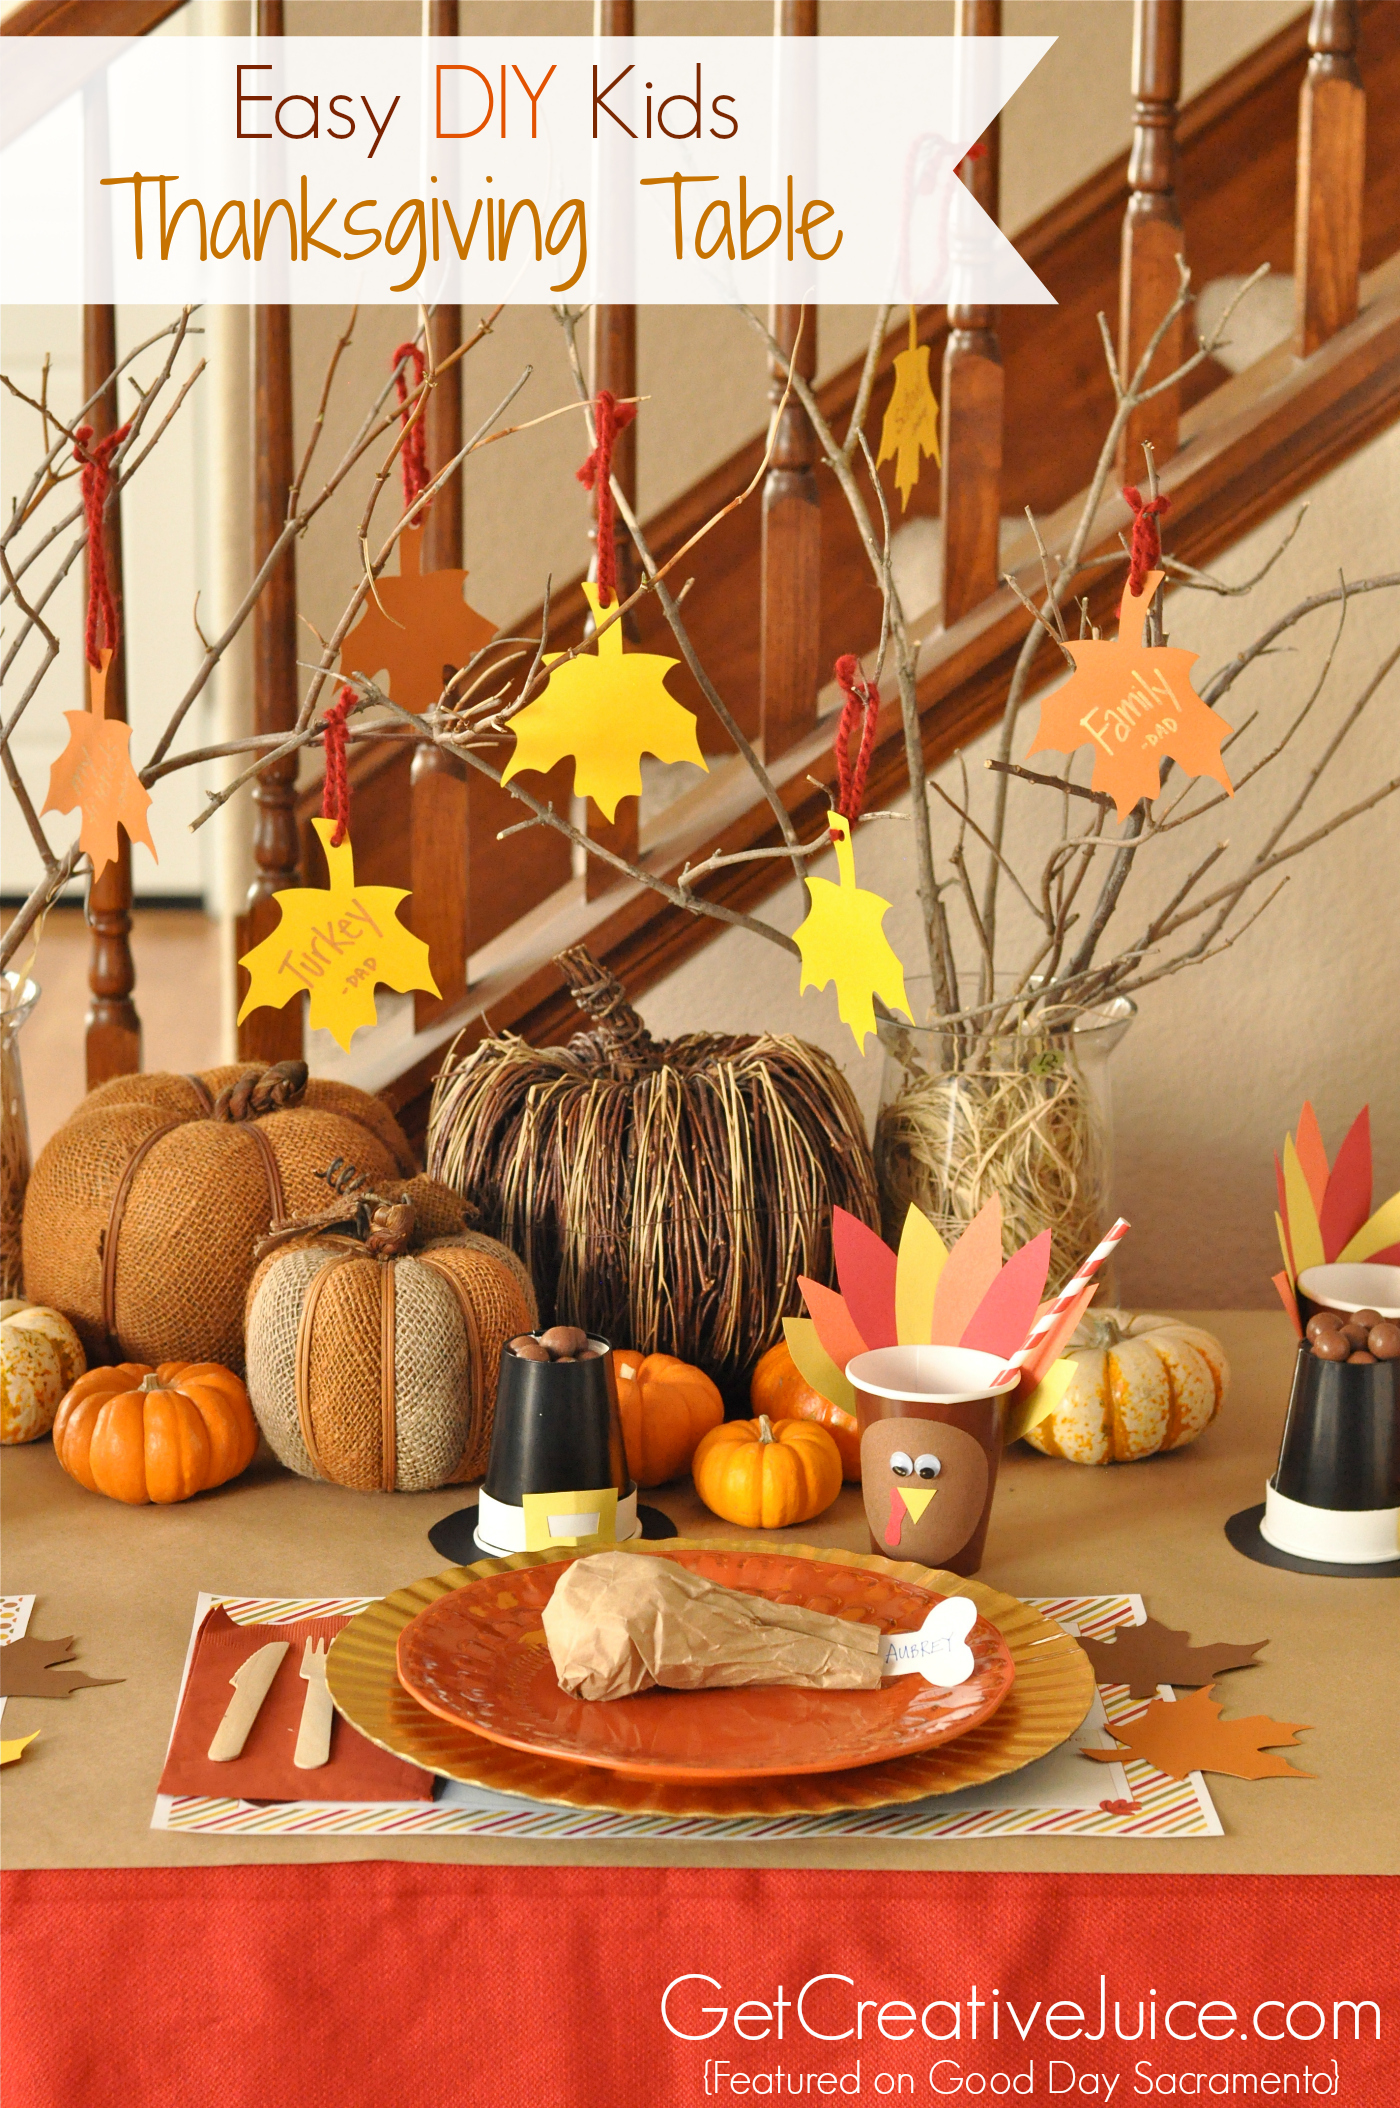 Exceptional Easy DIY Kids Thanksgiving Table Ideas Nice Look